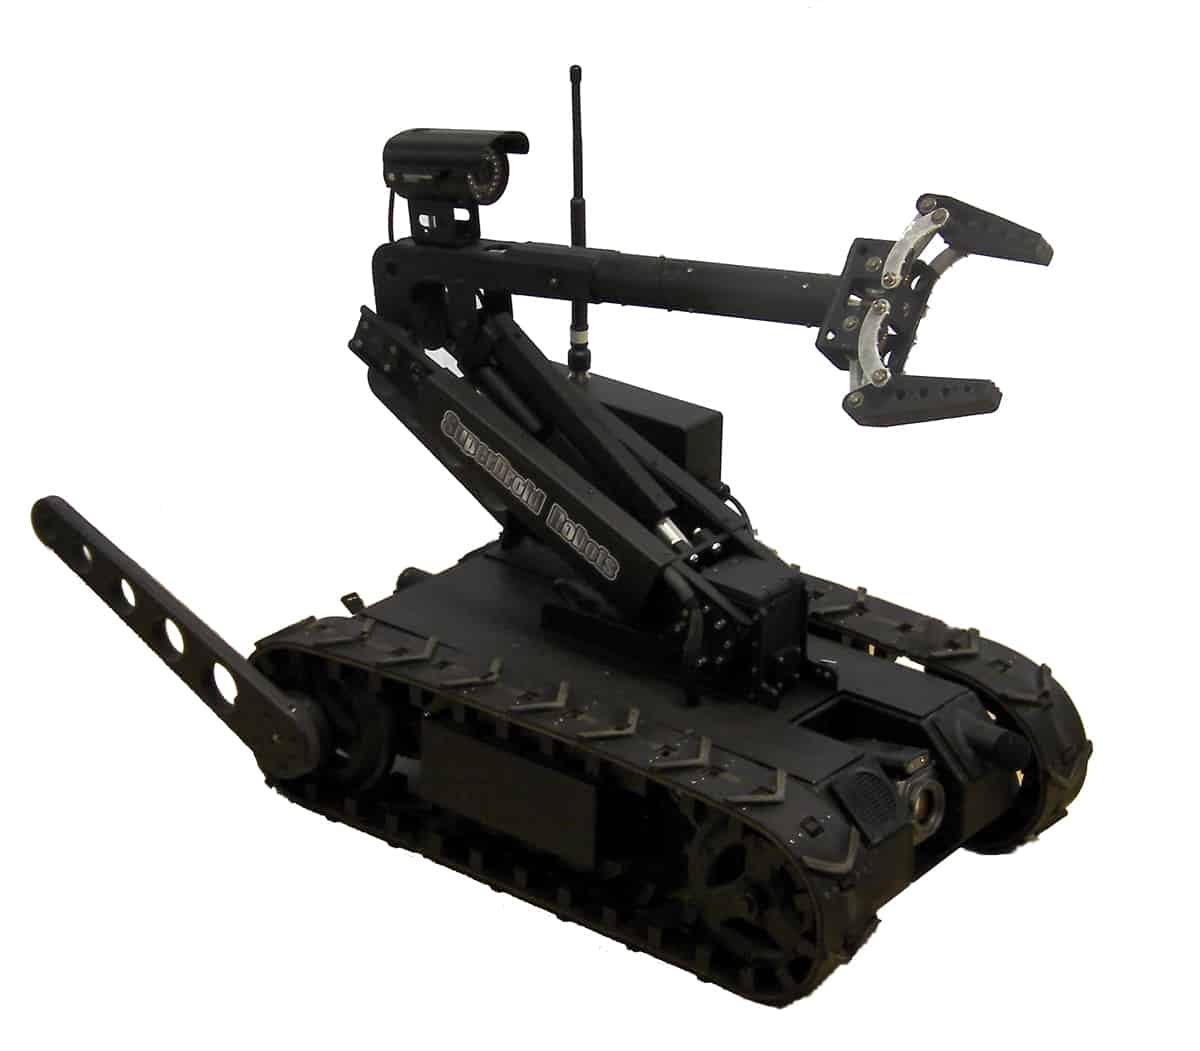 TP-600-291 LT2-F with 4-Axis Arm